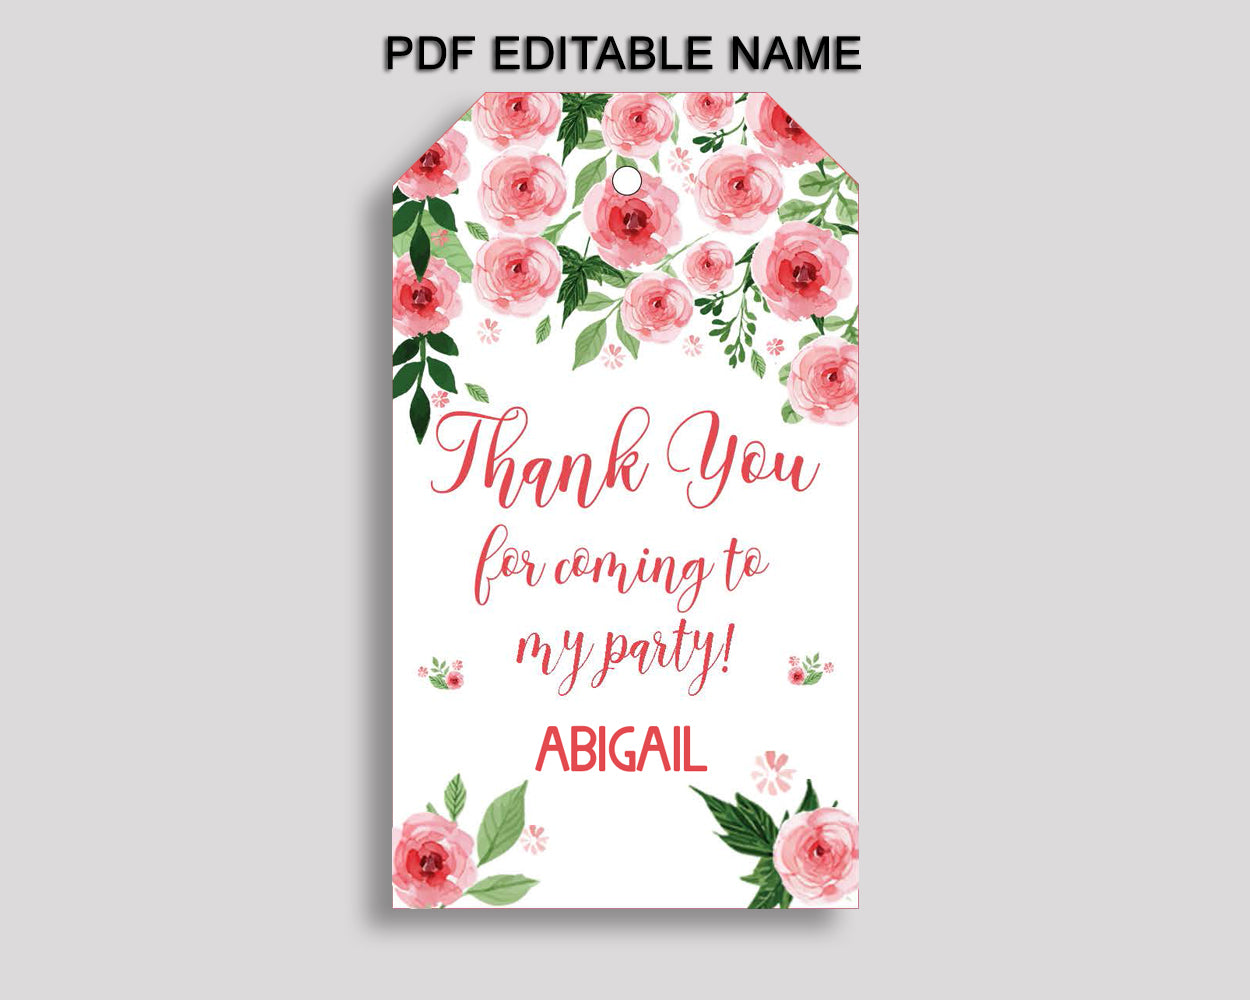 Watercolor Flowers Favor Tags Pink Green Party Tags Watercolor Flowers Birthday Tags Watercolor Flowers Thank You Tags Girl SLEPQ